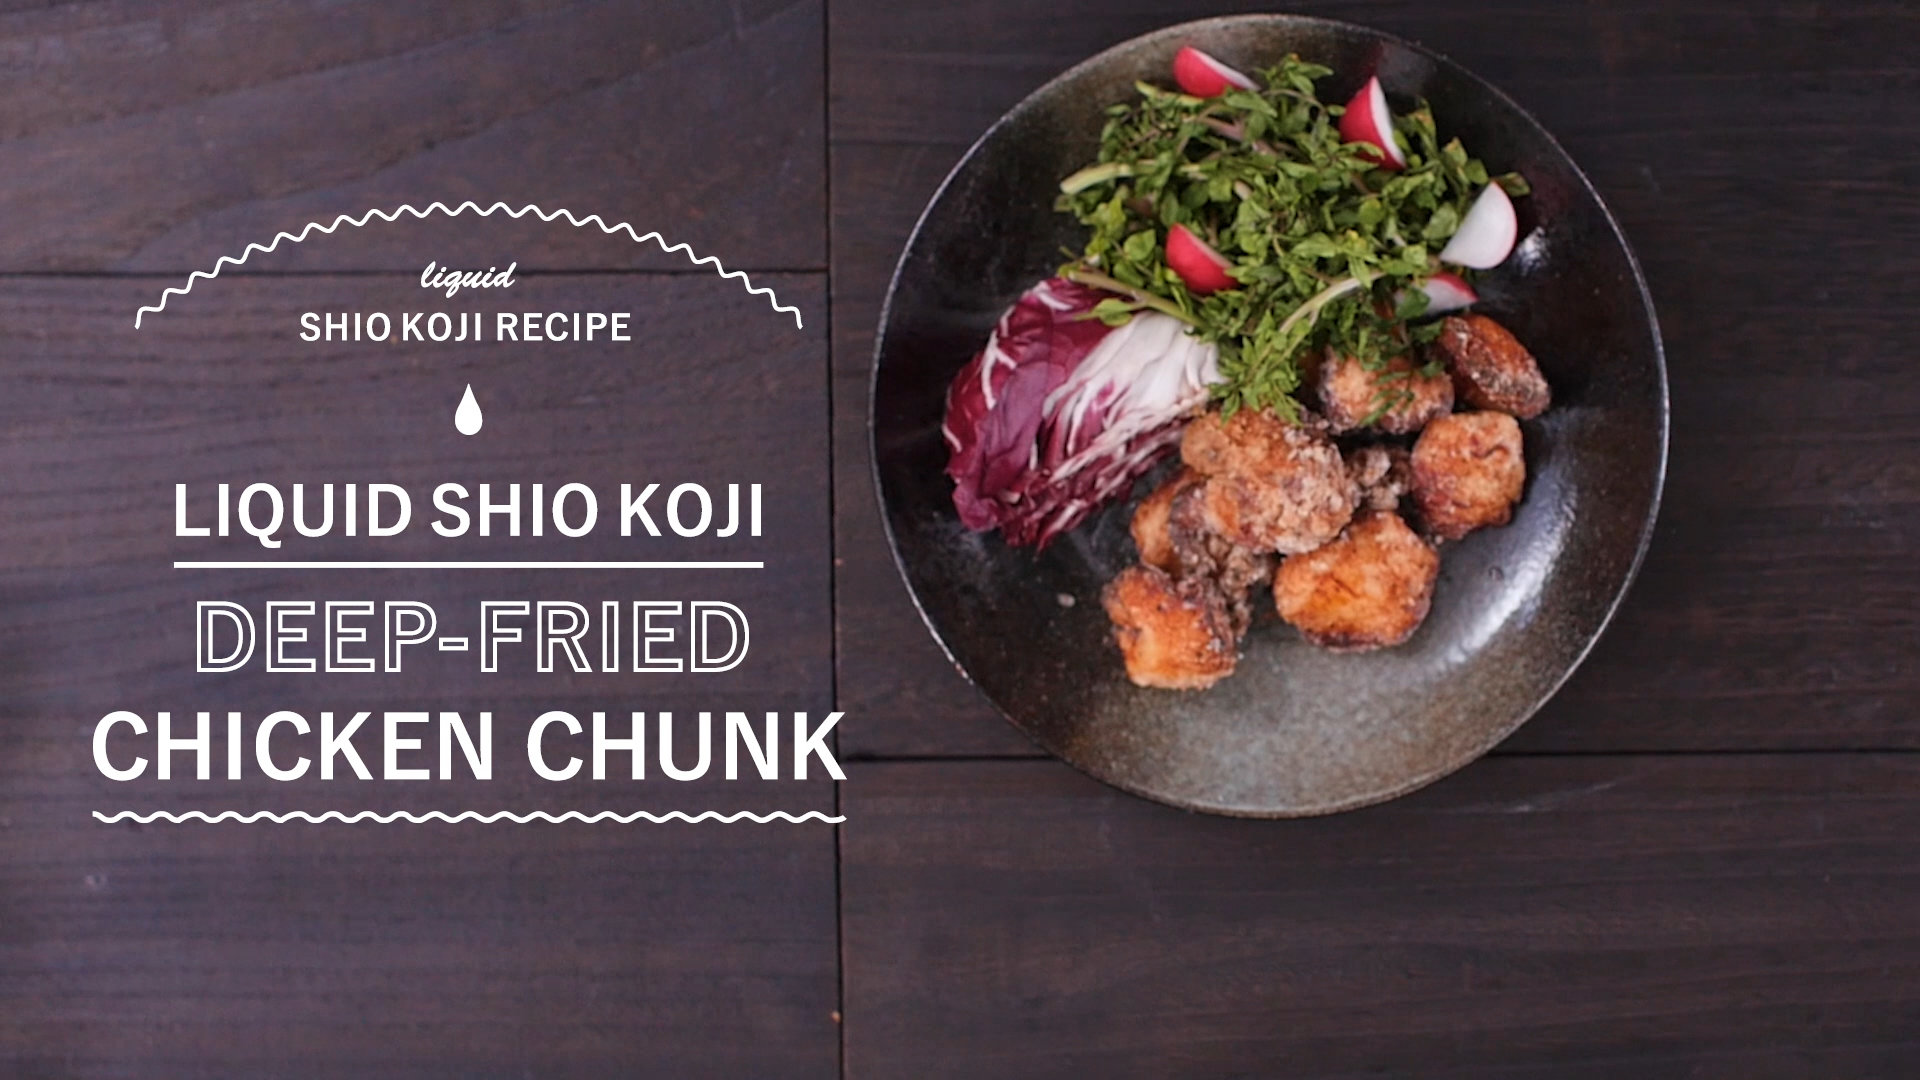 【LIQUID SHIO KOJI RECIPE DEEP FRIED CHICKEN CHUNK】 Use Liquid Shio Koji = Tender and juicy!